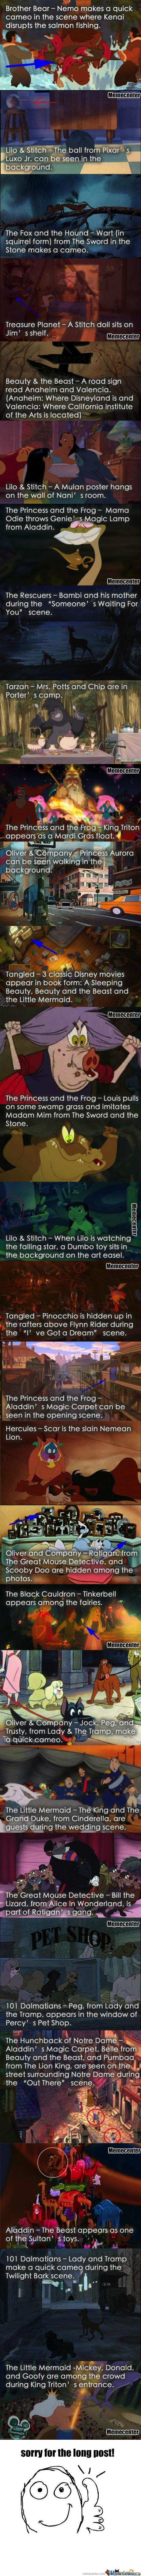 Disney Characters Found In Other Disney Movies